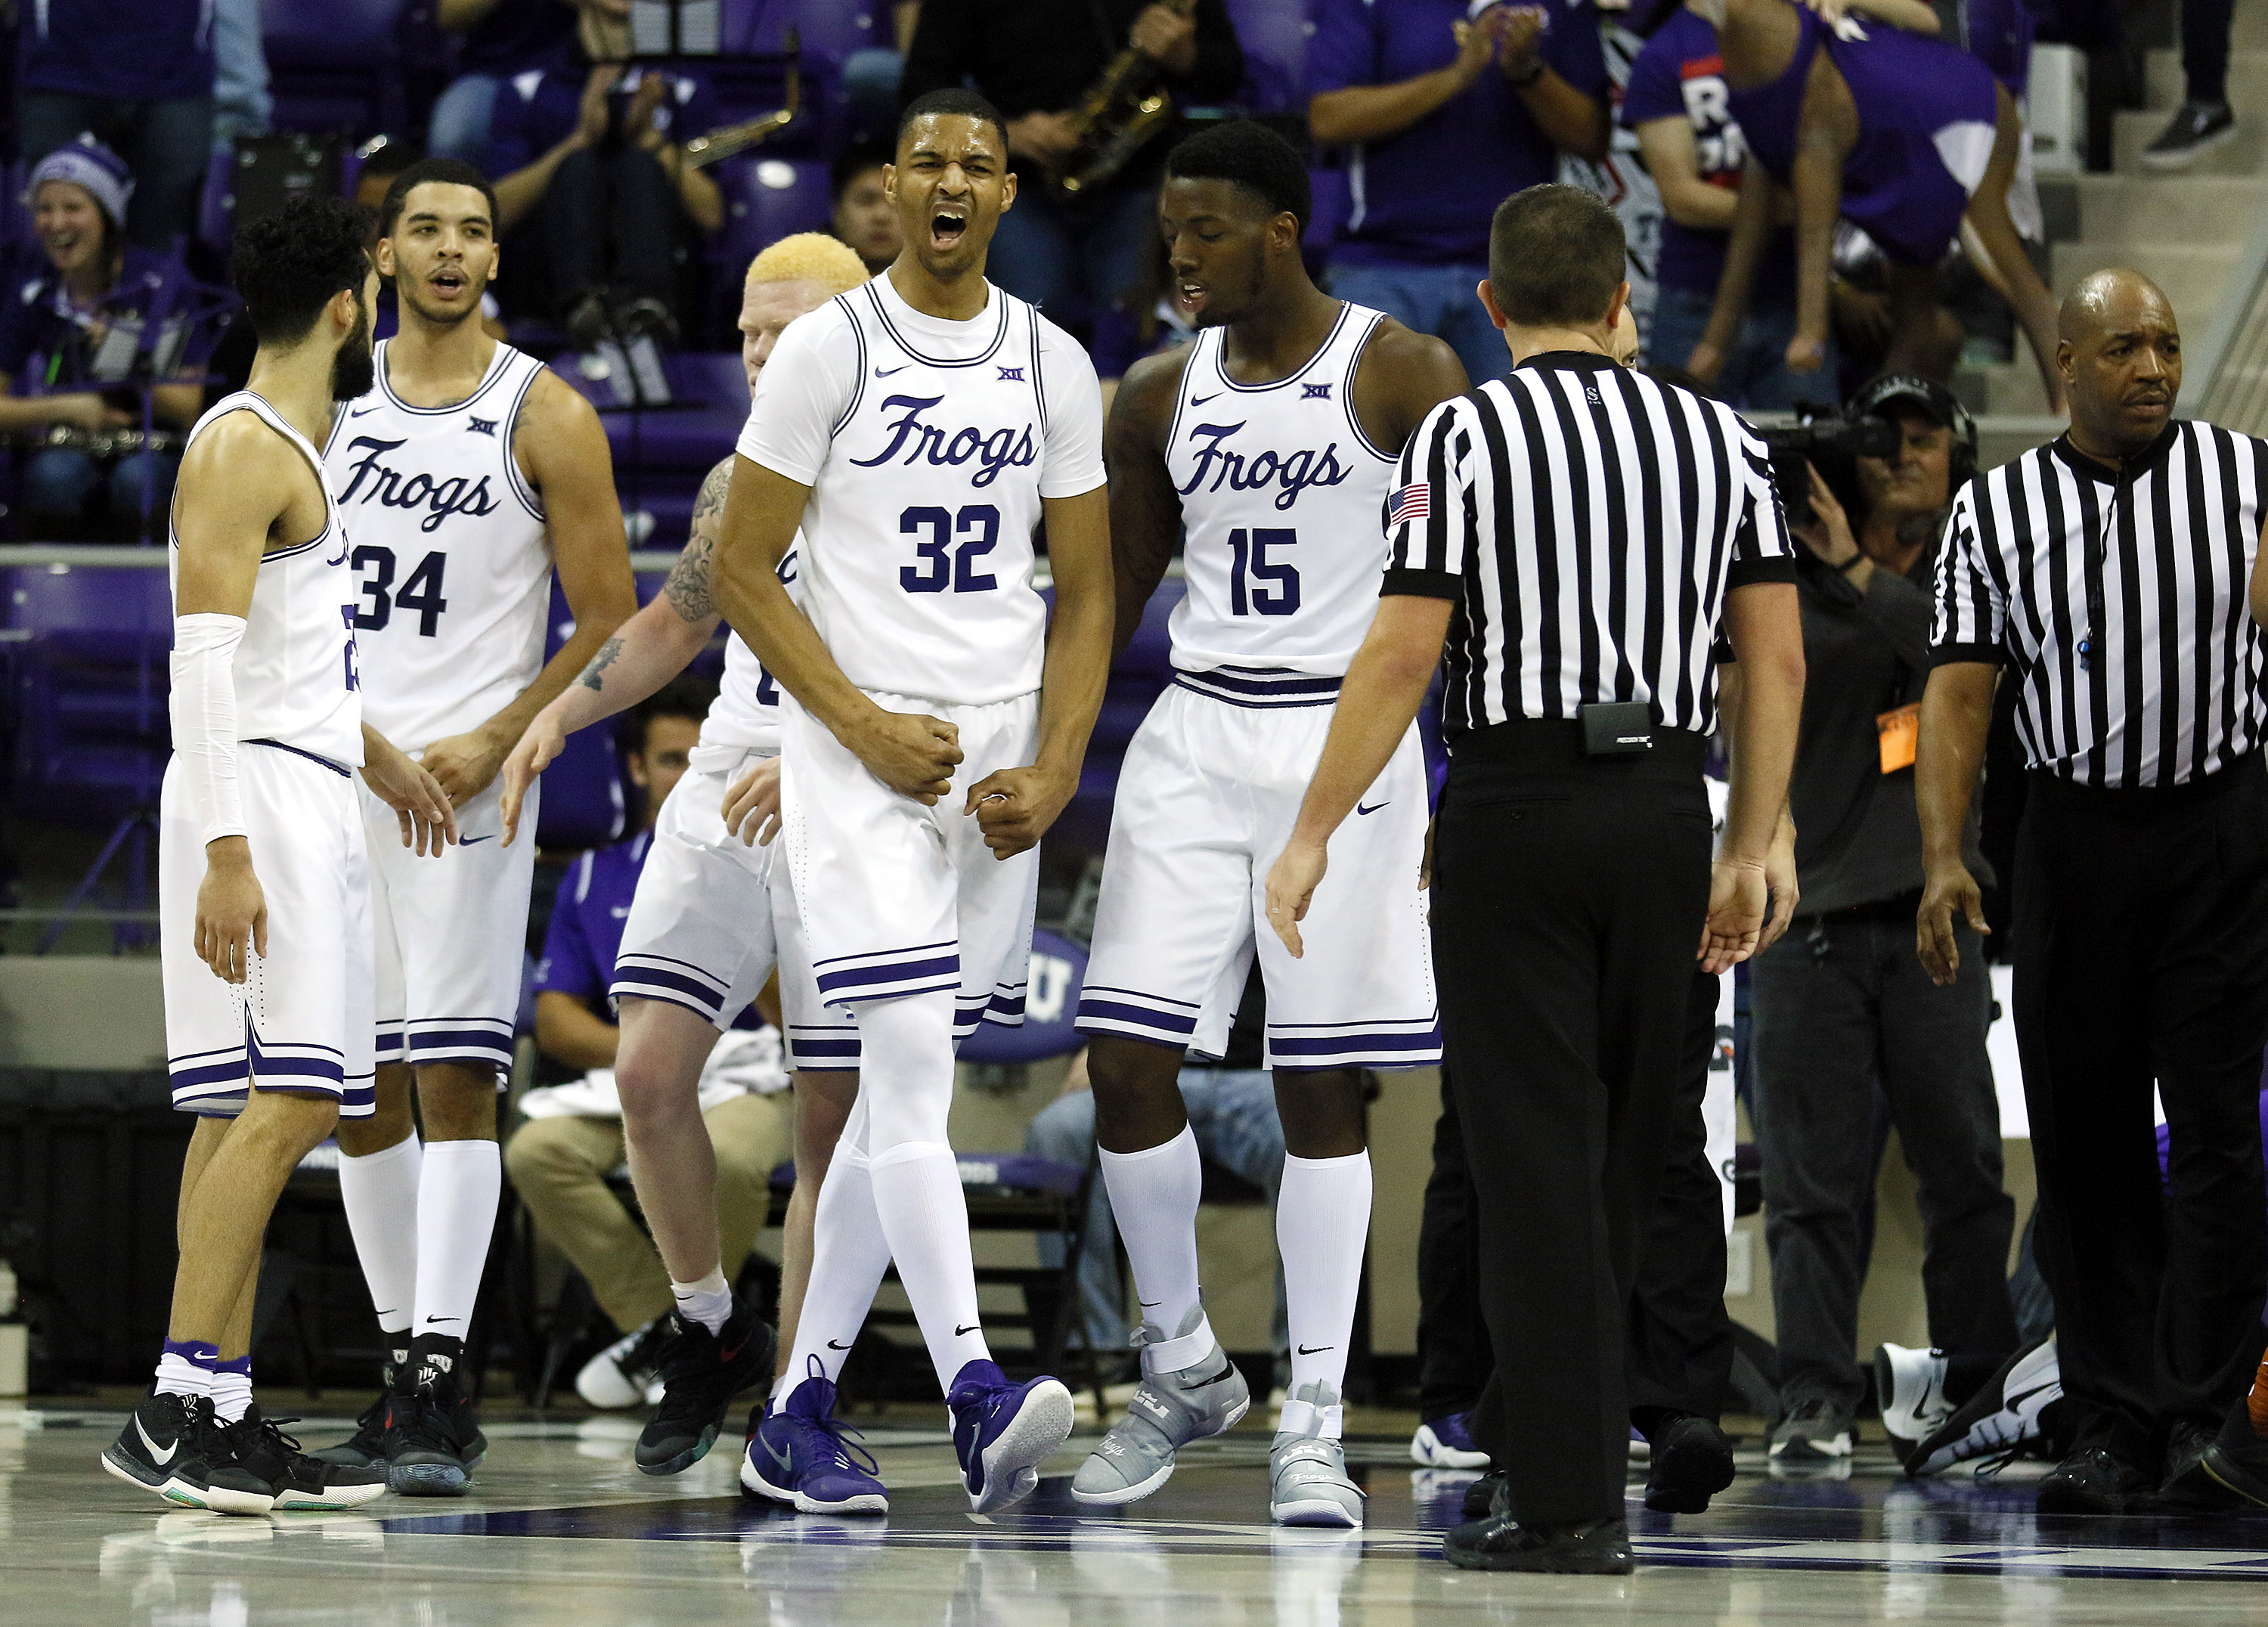 84c638a8f83 Not Done Yet: TCU Basketball Heading to the NIT